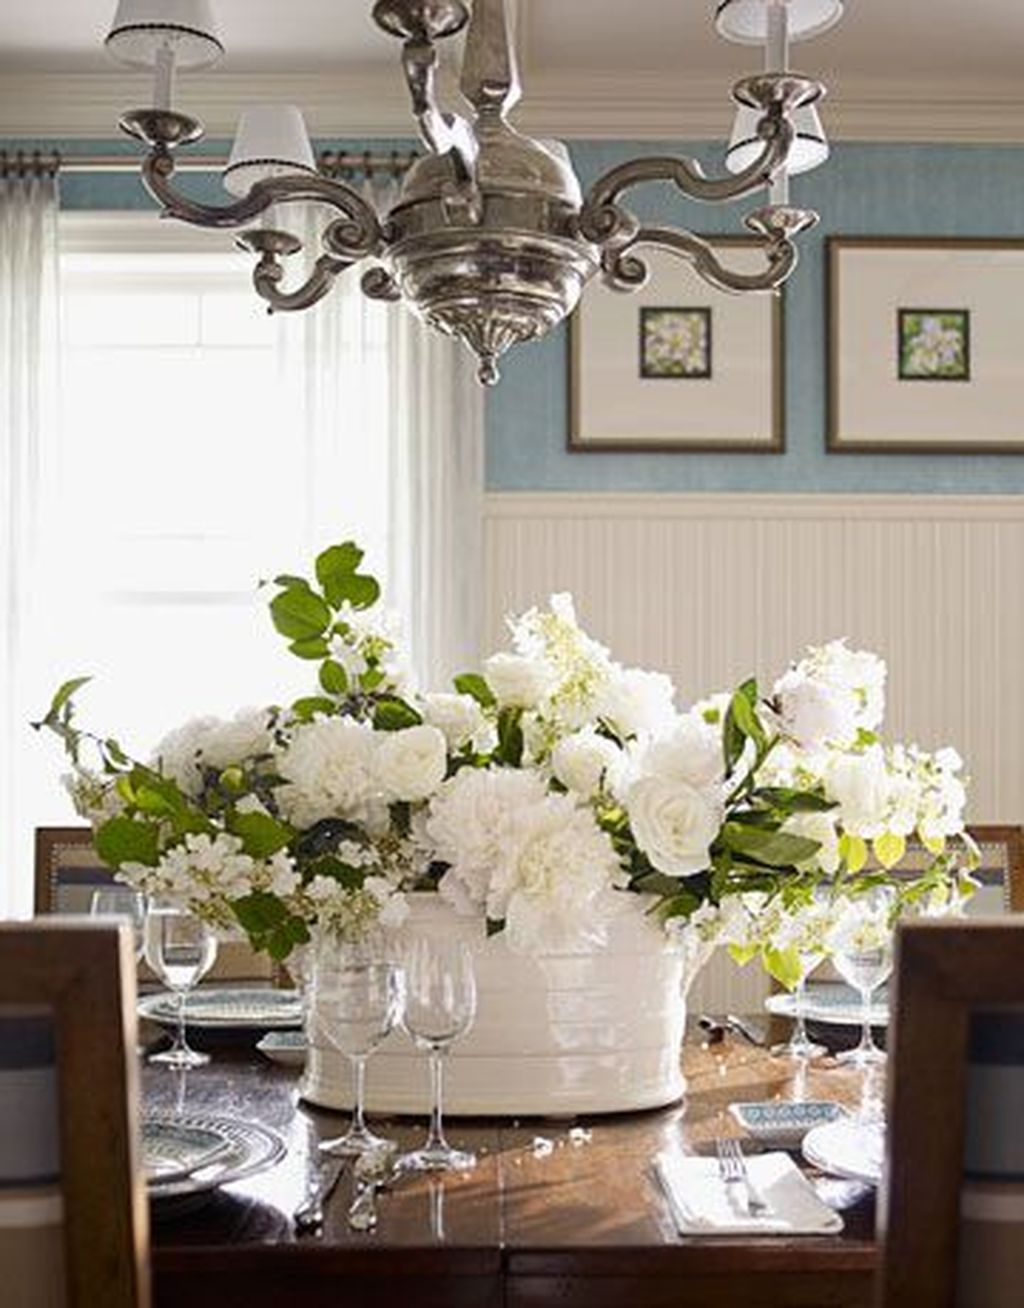 Custom 404 Decorsw Dining Room Table Centerpieces Dining Room Centerpiece Dining Table Centerpiece